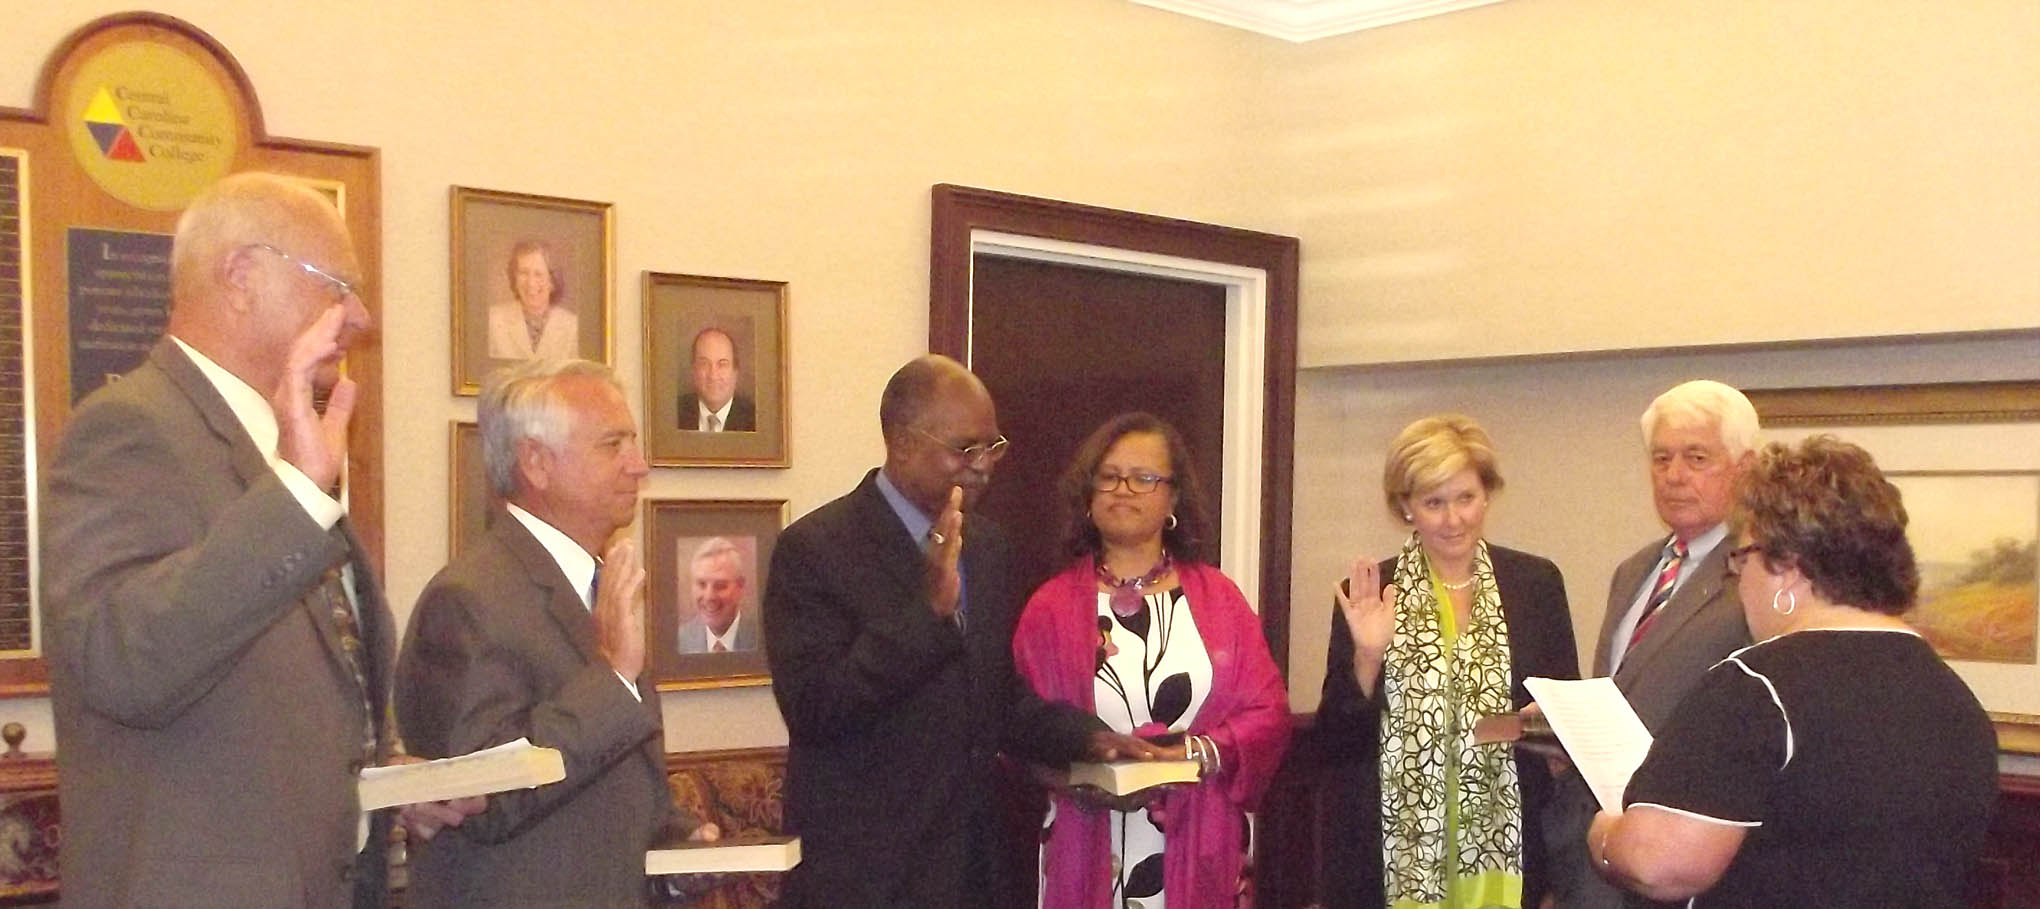 Read the full story, CCCC newest trustees are sworn-in